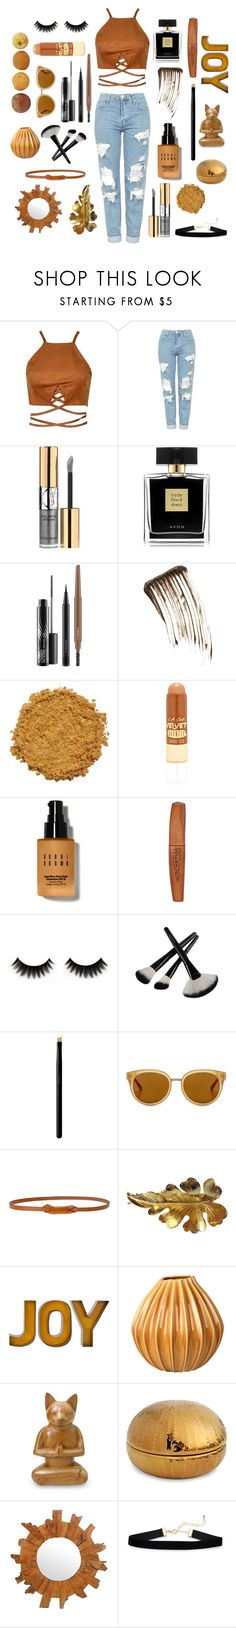 """🍂🍁🍂"" by bashful-beauty ❤ liked on Polyvore featuring Topshop, Yves Saint Laurent, Avon, MAC Cosmetics, Illamasqua, L.A. Girl, Bobbi Brown Cosmetics, Rimmel, SUQQU and Draper James"